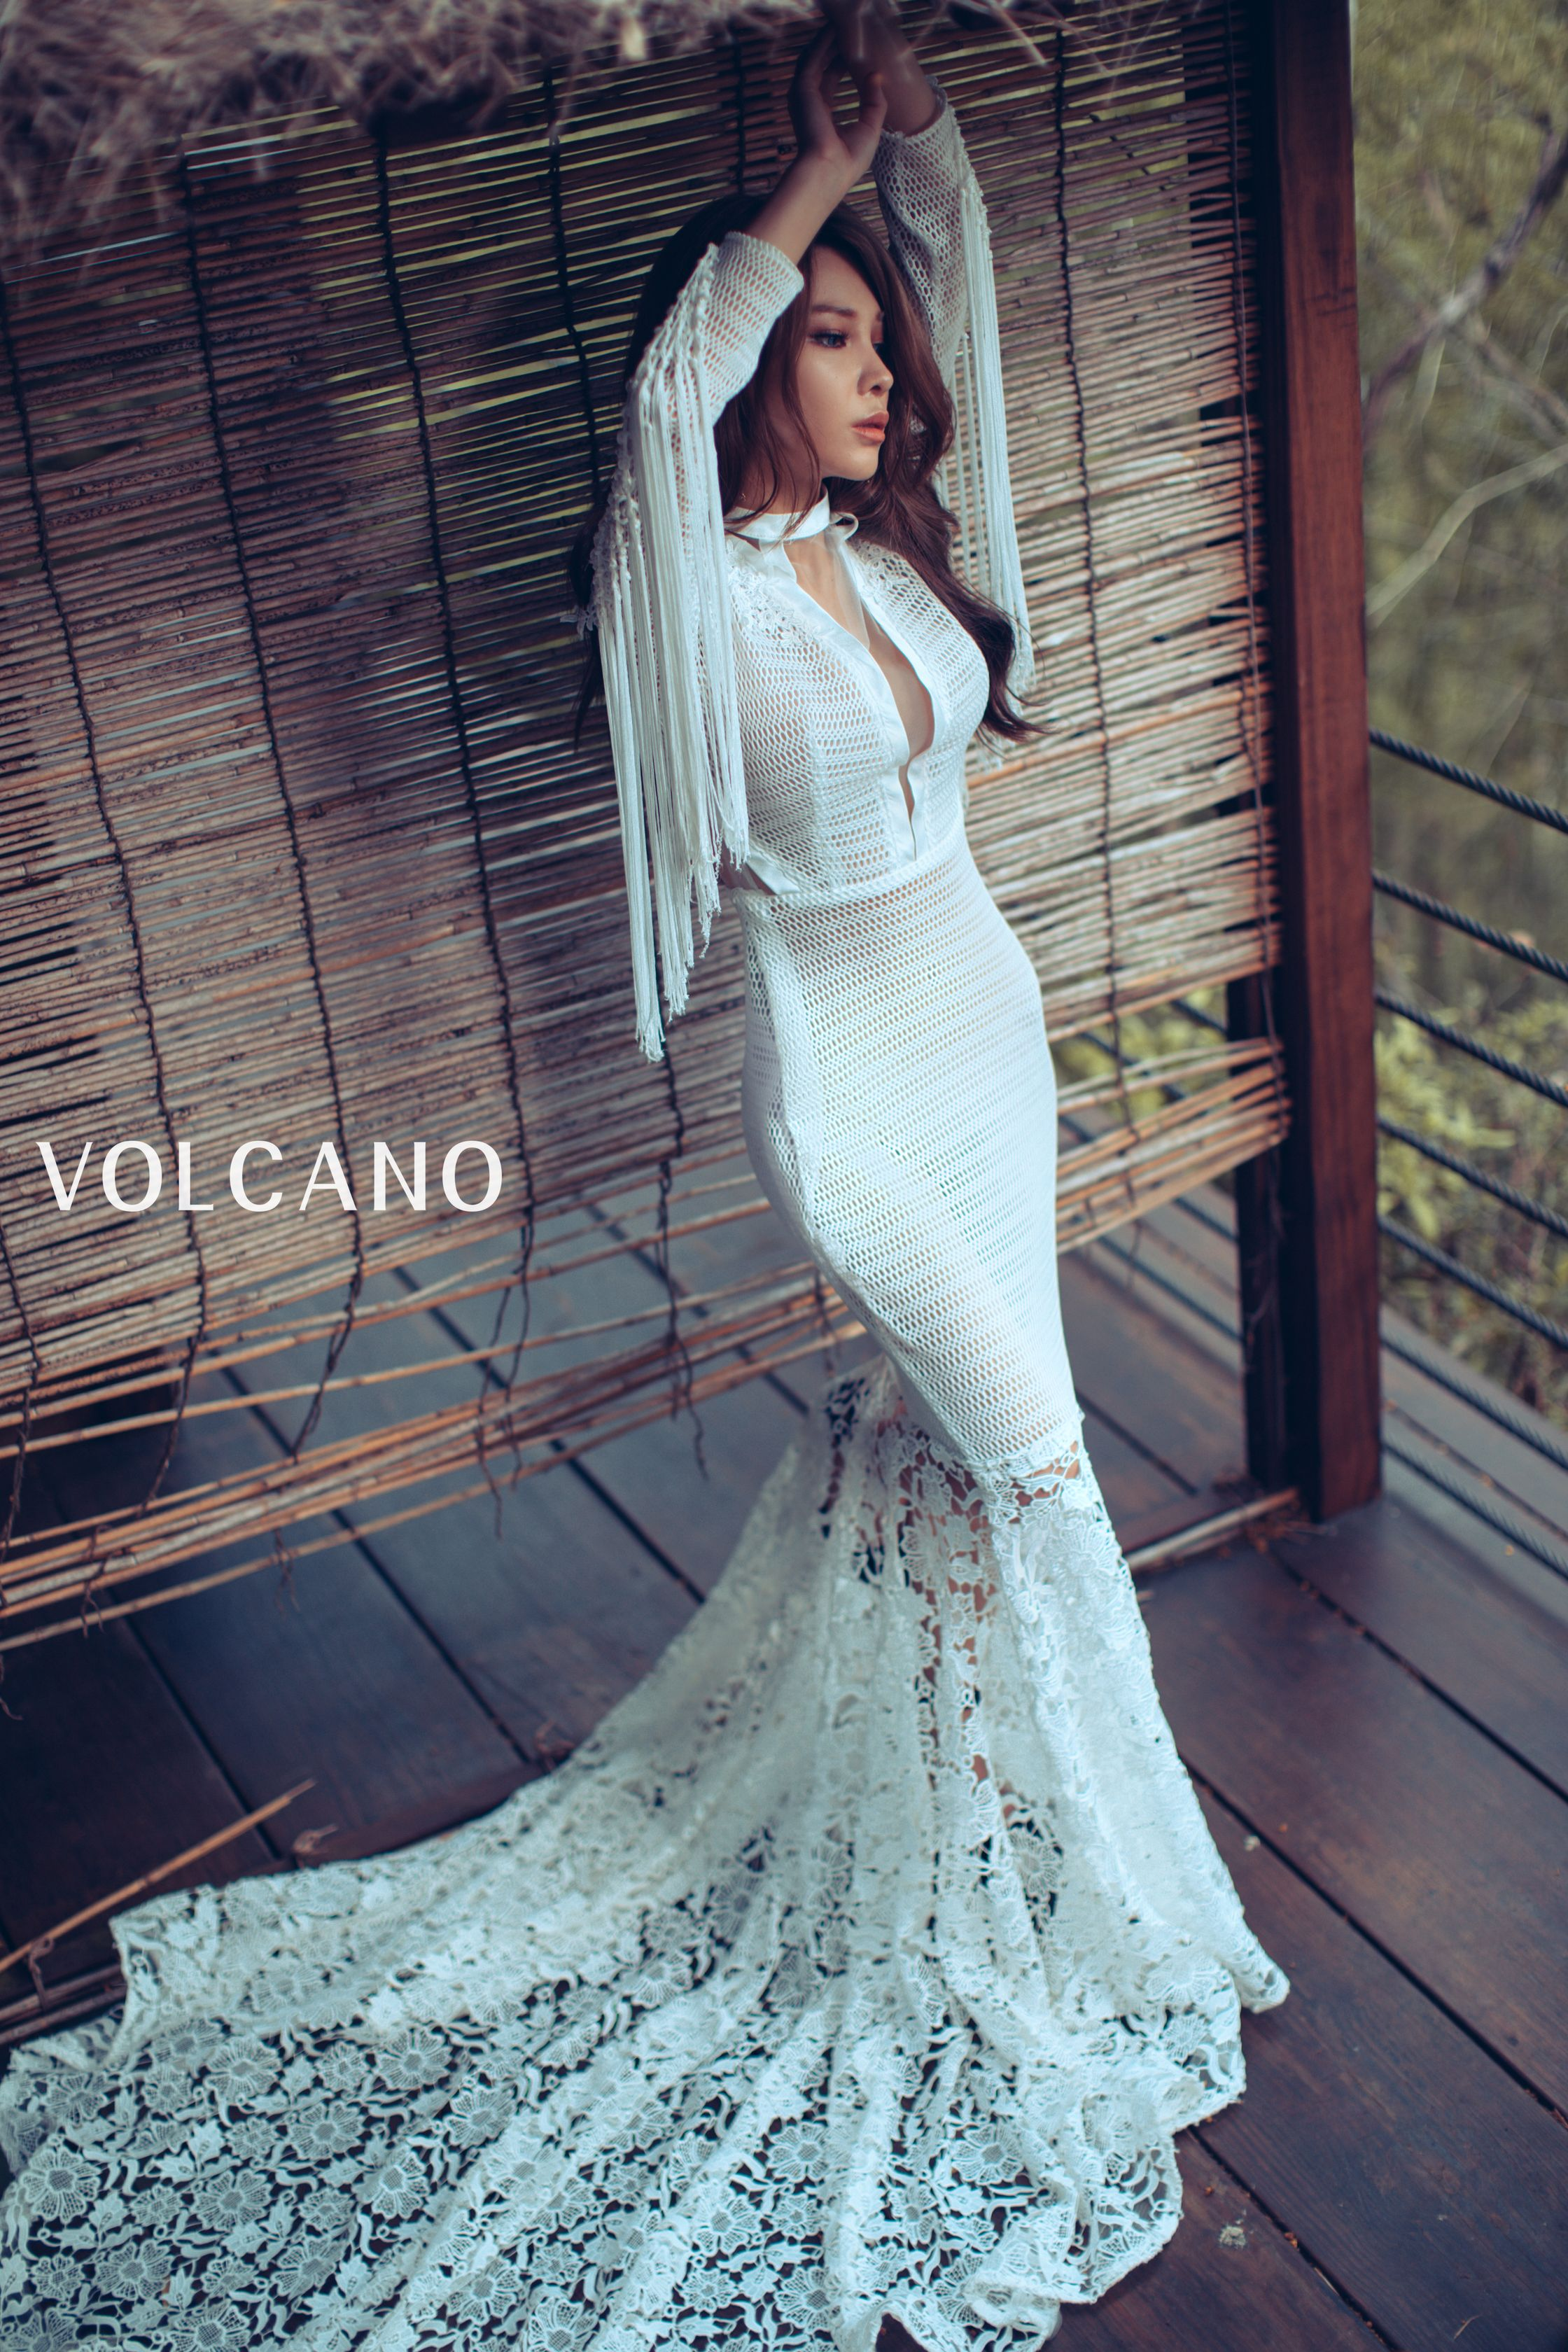 volcano wedding_Ginny